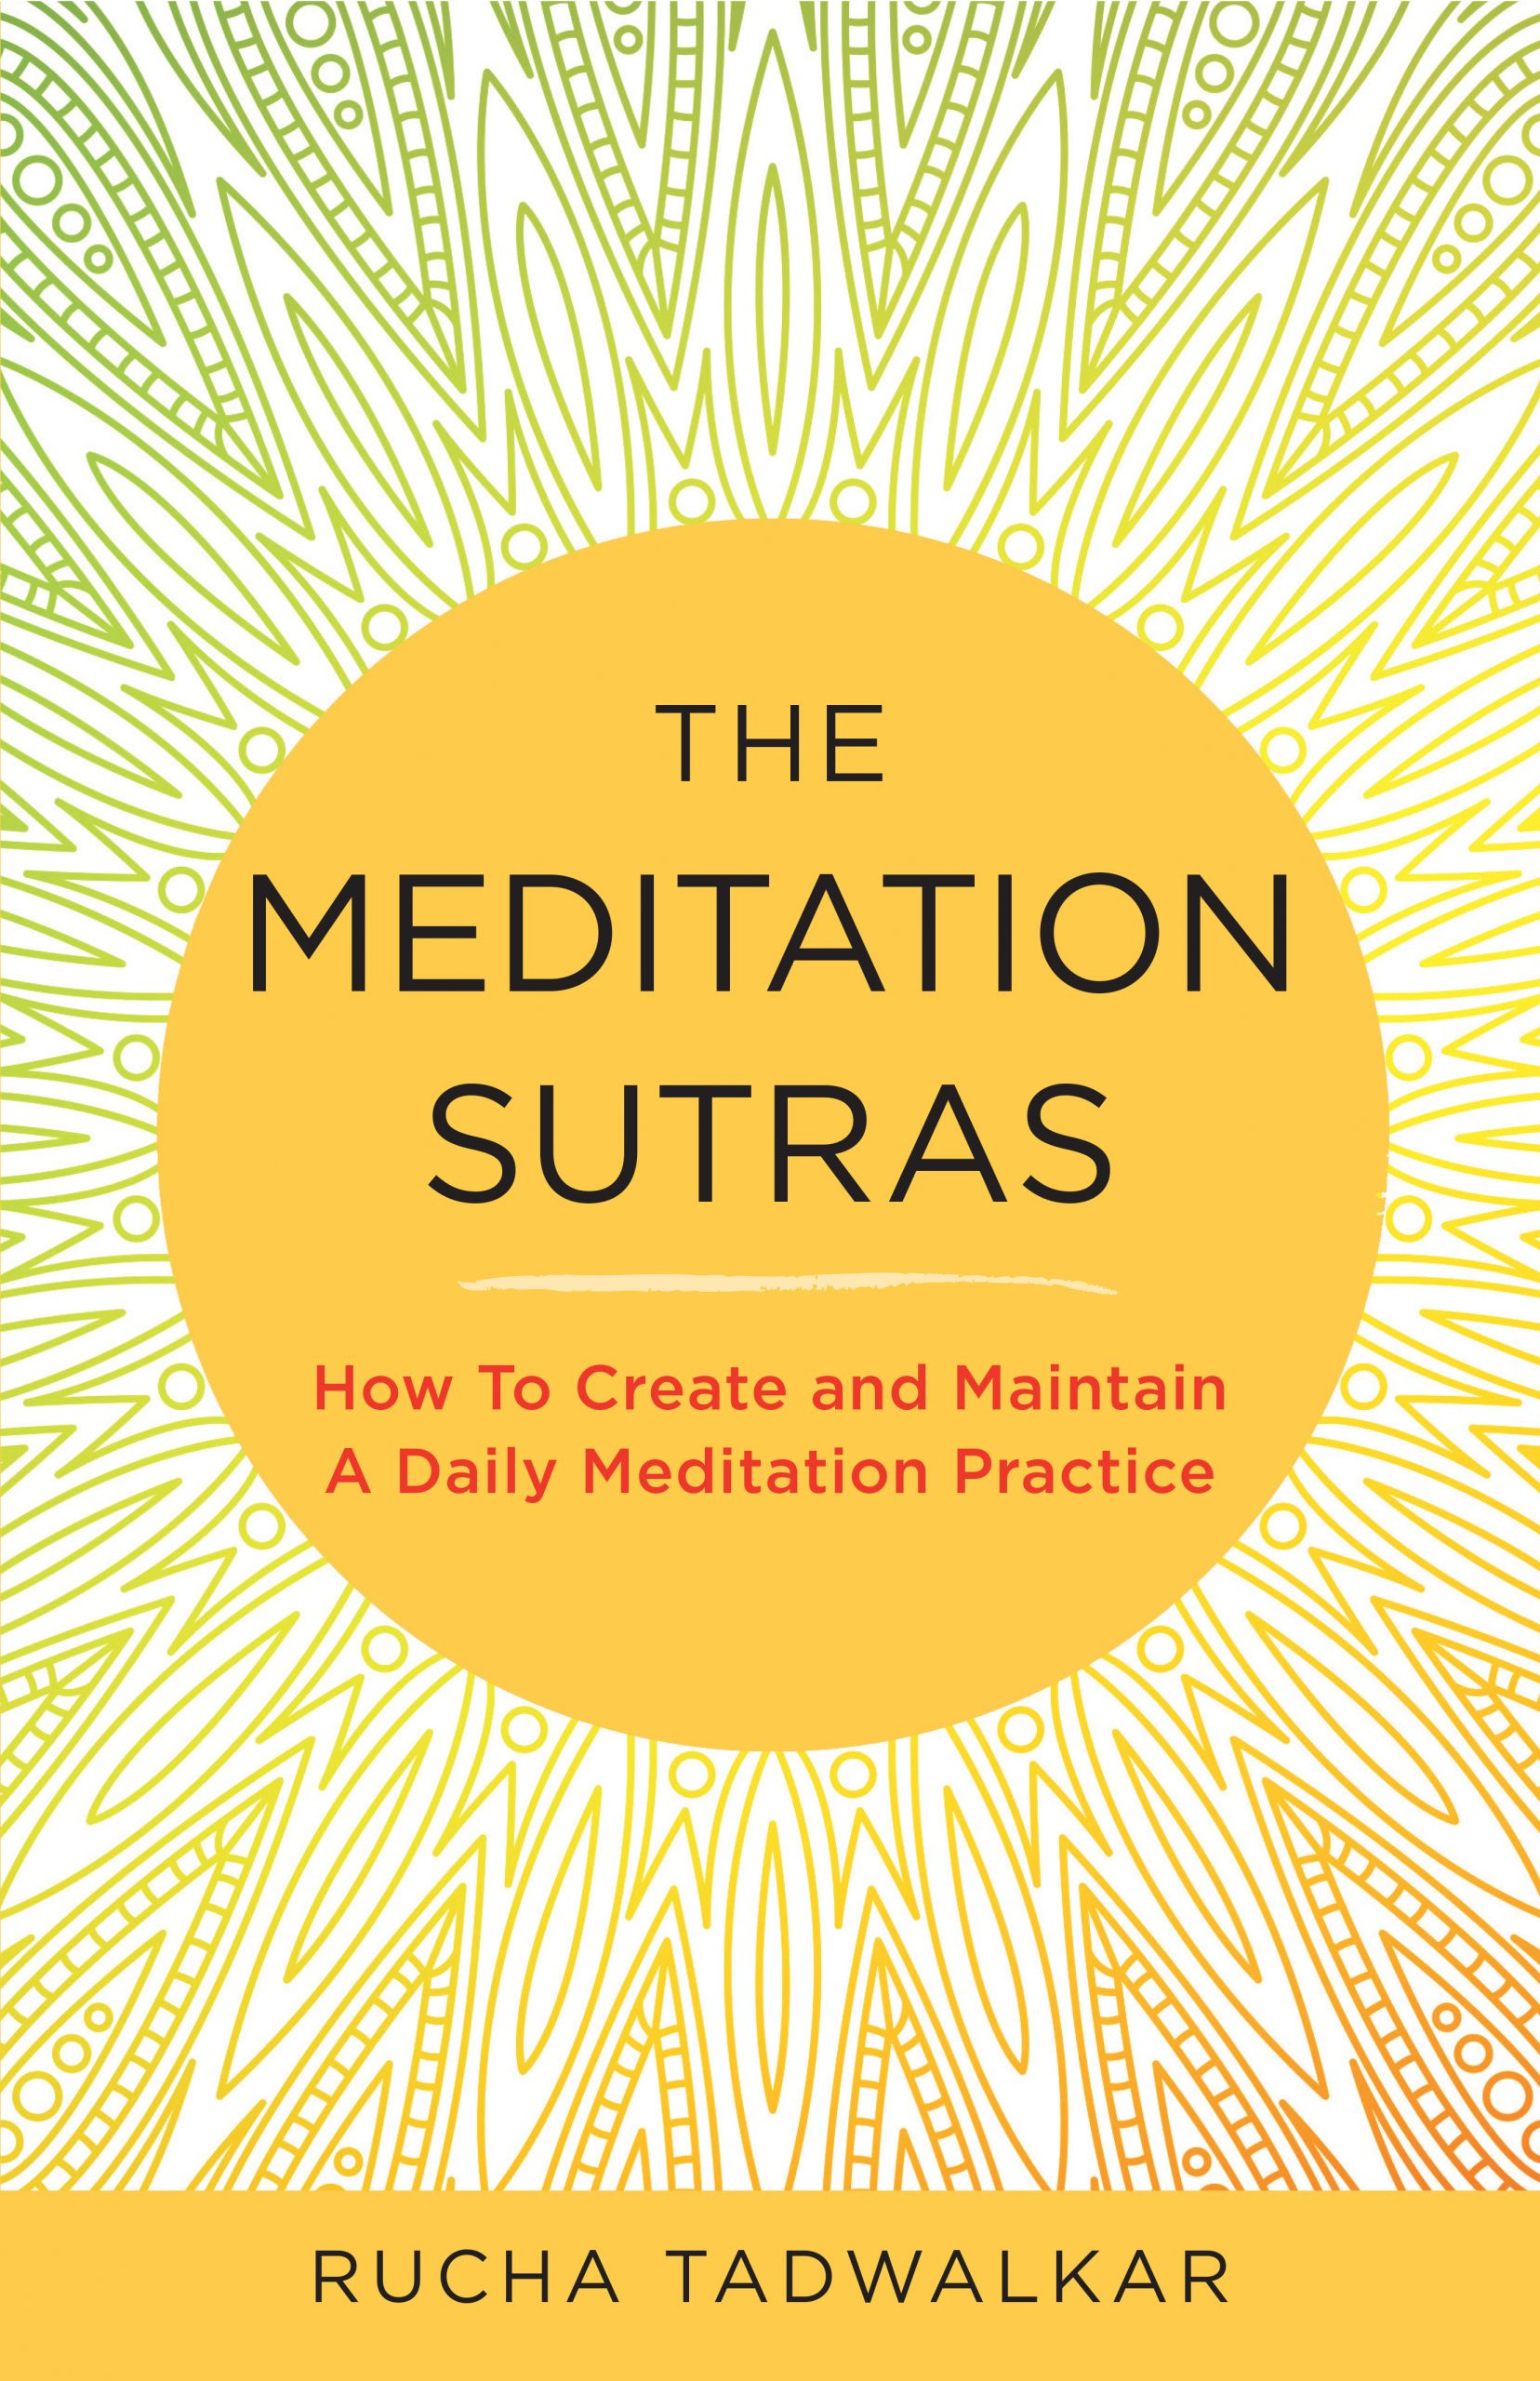 New Meditation Book! The Meditation Sutras by Rucha Tadwalkar